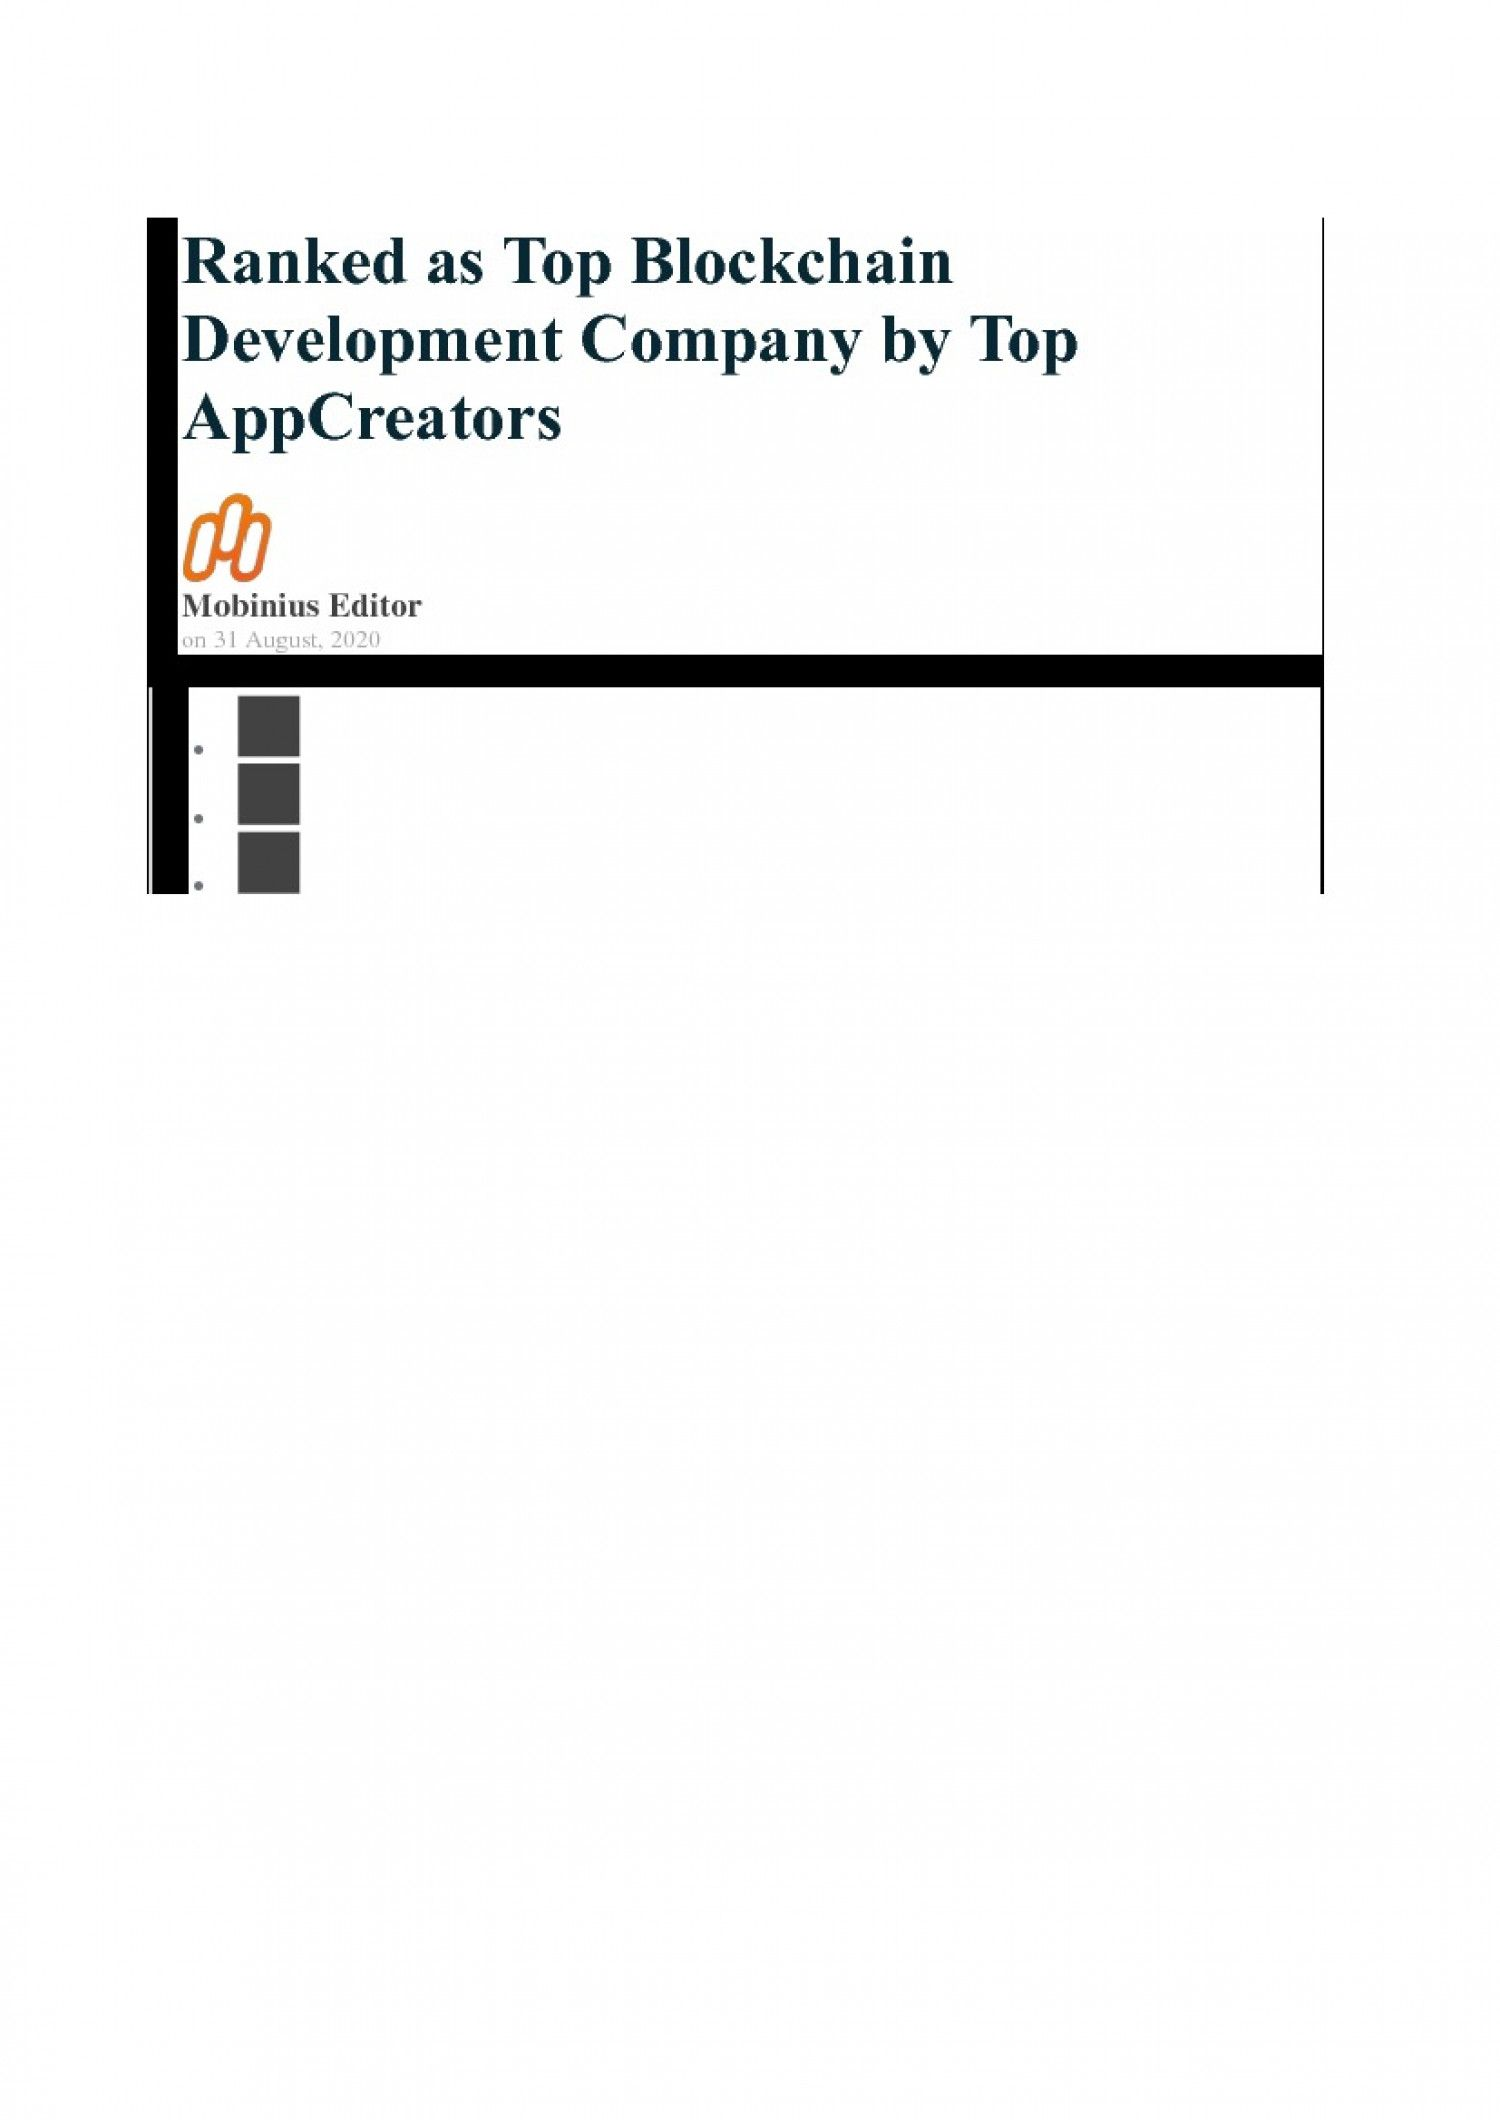 Ranked as Top Blockchain Development Company by Top AppCreators   Visual.ly